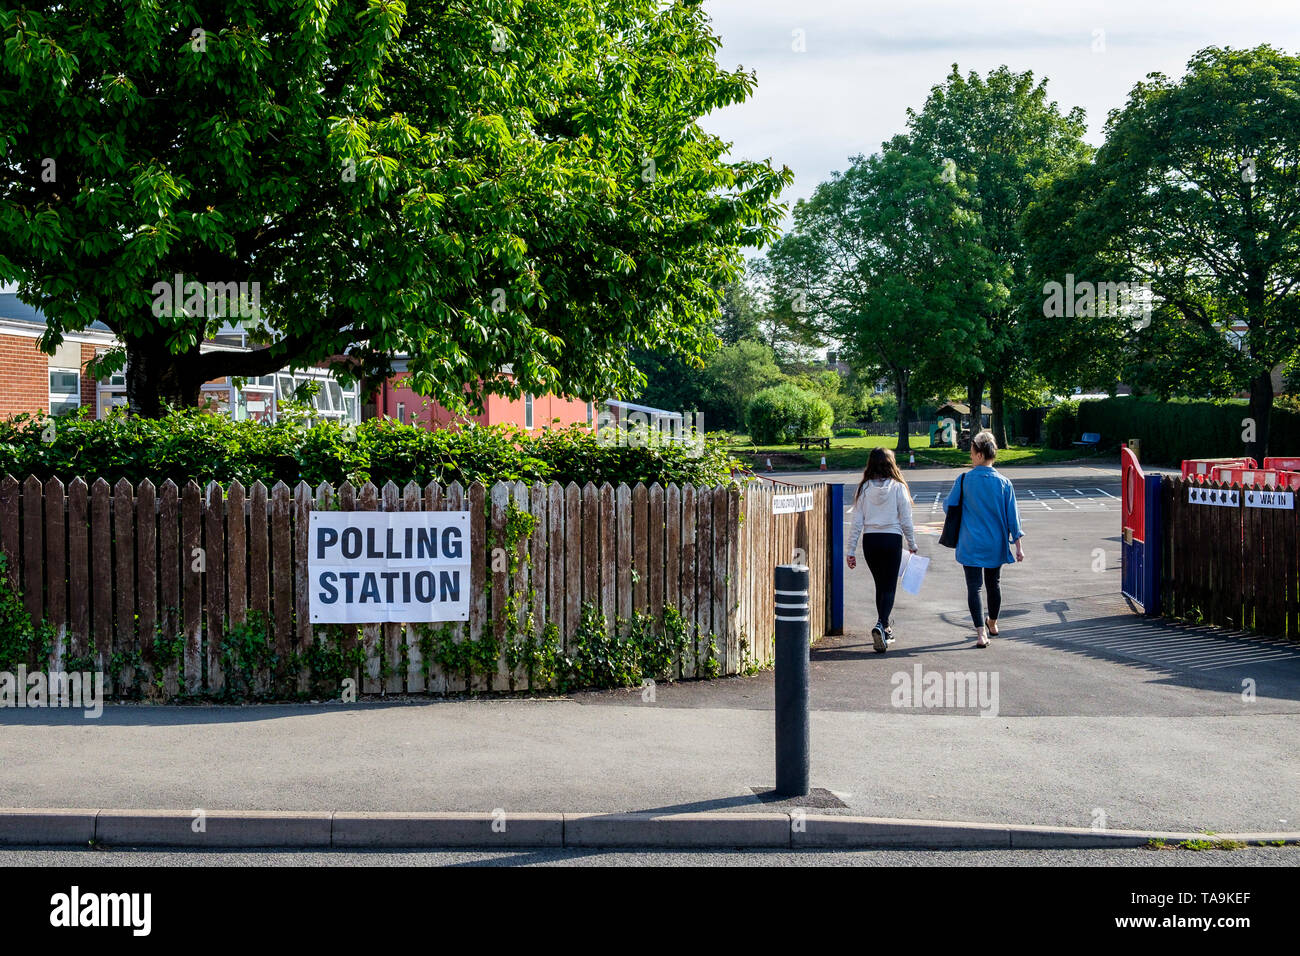 Chippenham, UK. 23rd May, 2019. Two women going to vote in the 2019 European Parliament elections are pictured entering a polling station situated inside a school in Chippenham, Wiltshire. Credit: Lynchpics/Alamy Live News - Stock Image